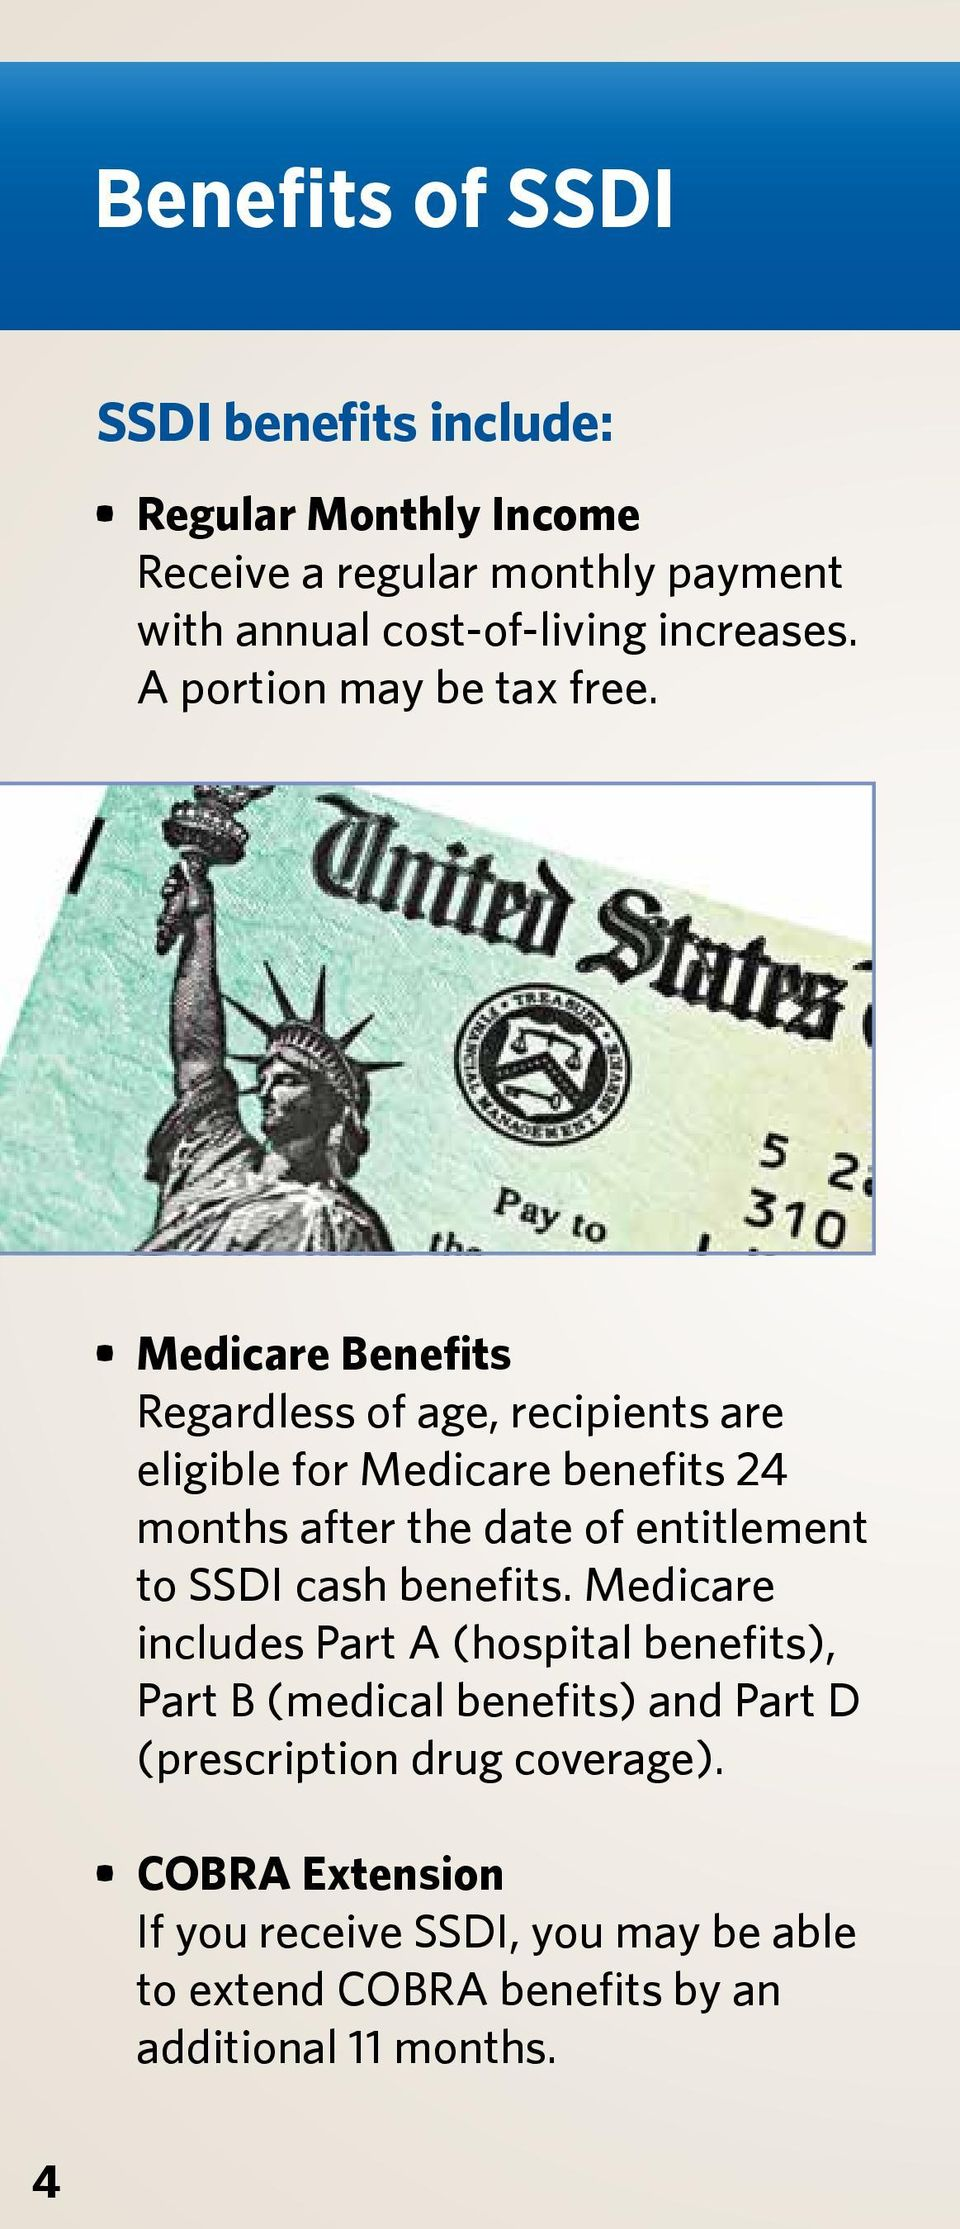 Medicare Benefits Regardless of age, recipients are eligible for Medicare benefits 24 months after the date of entitlement to SSDI